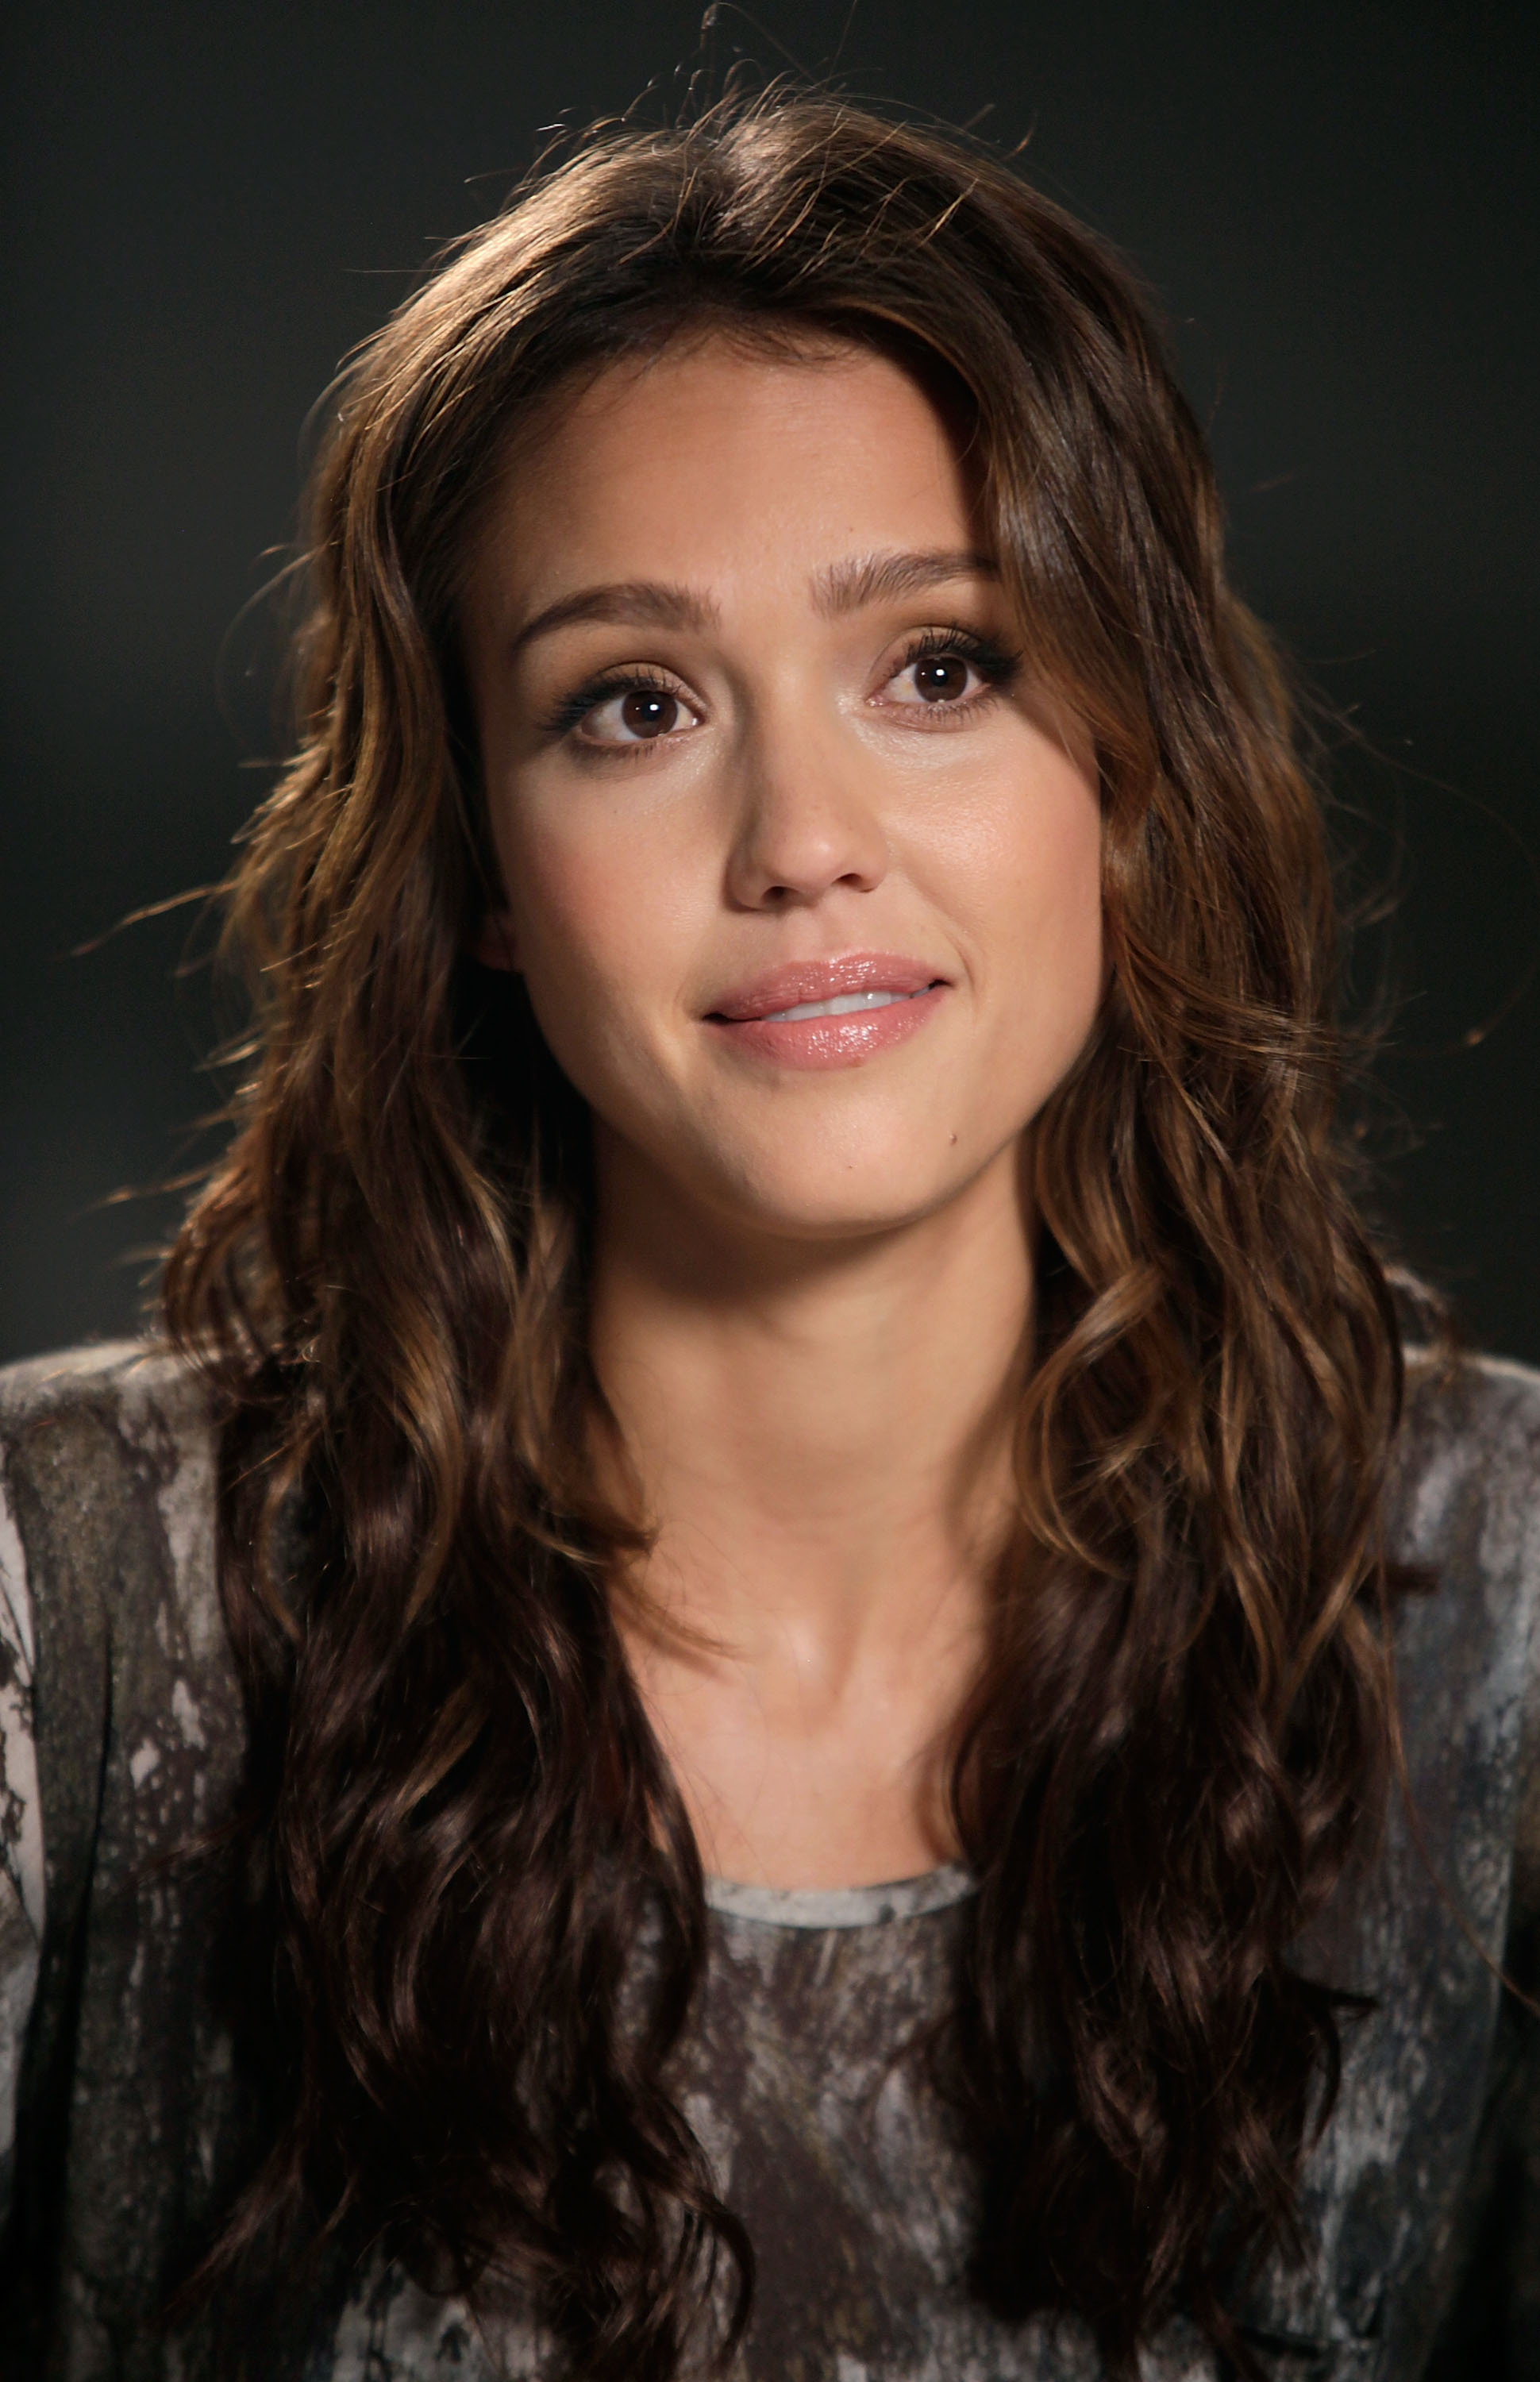 Women Jessica alba Actress HD Wallpaper